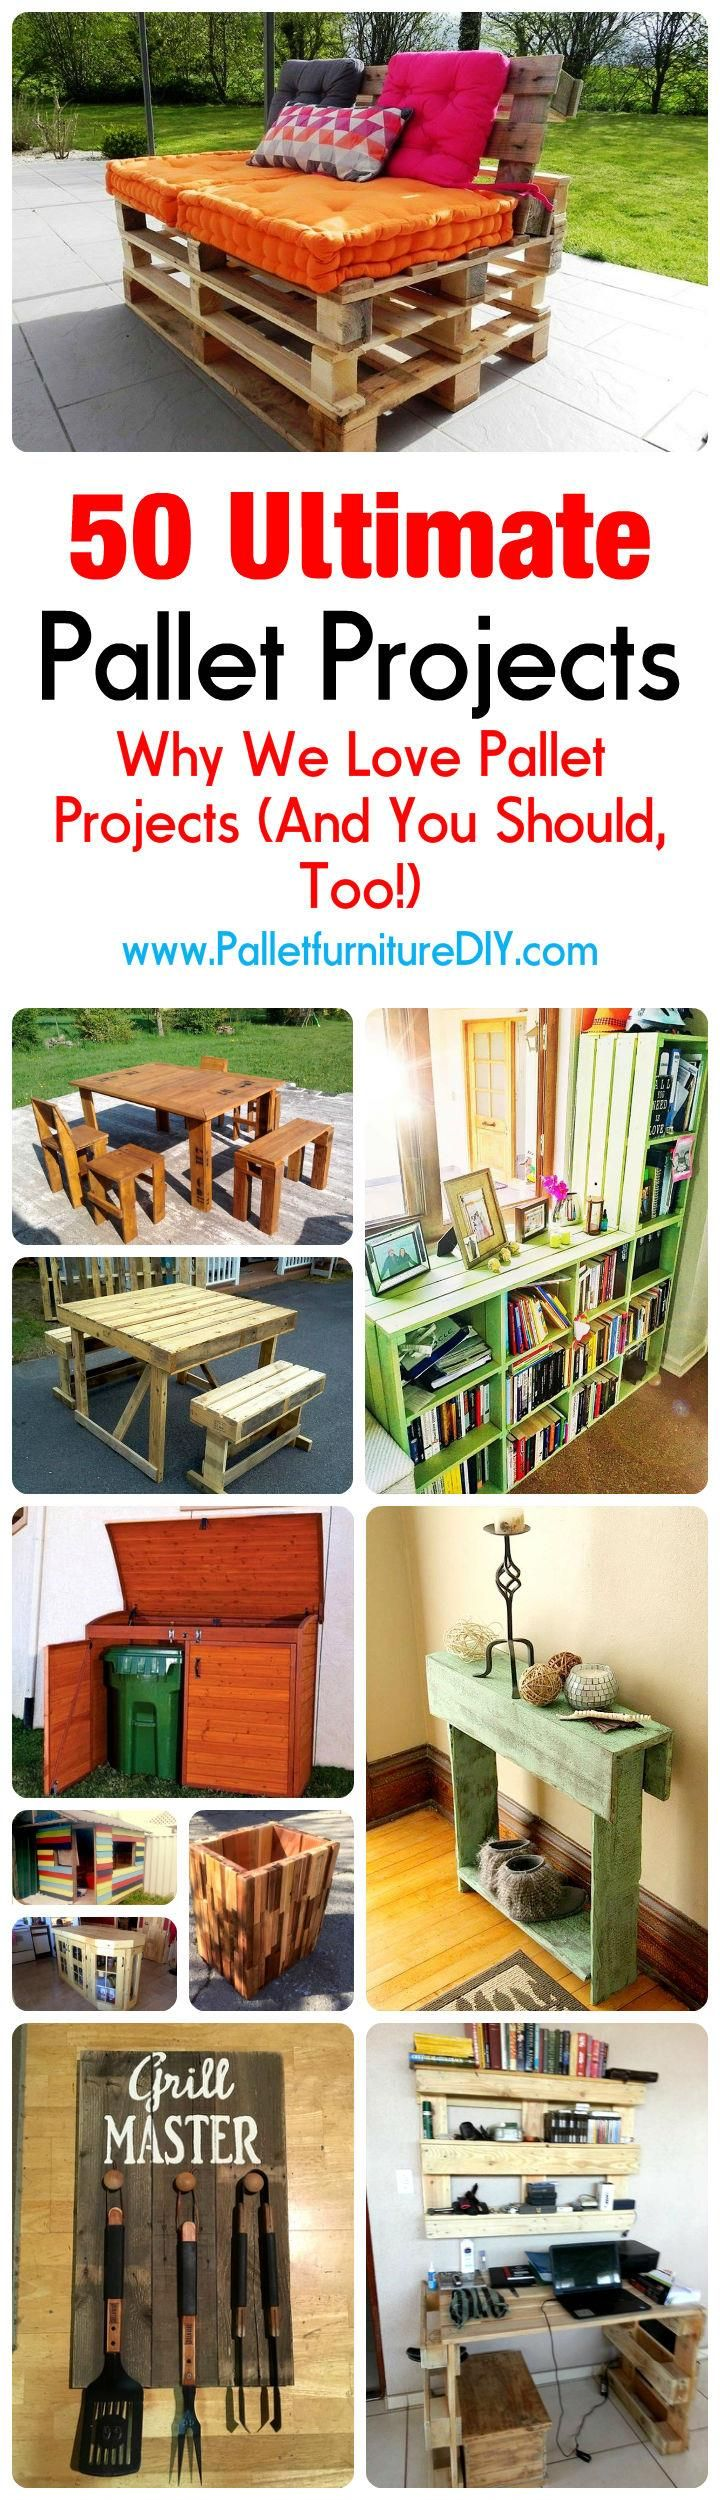 Why We Love Pallet Projects And You